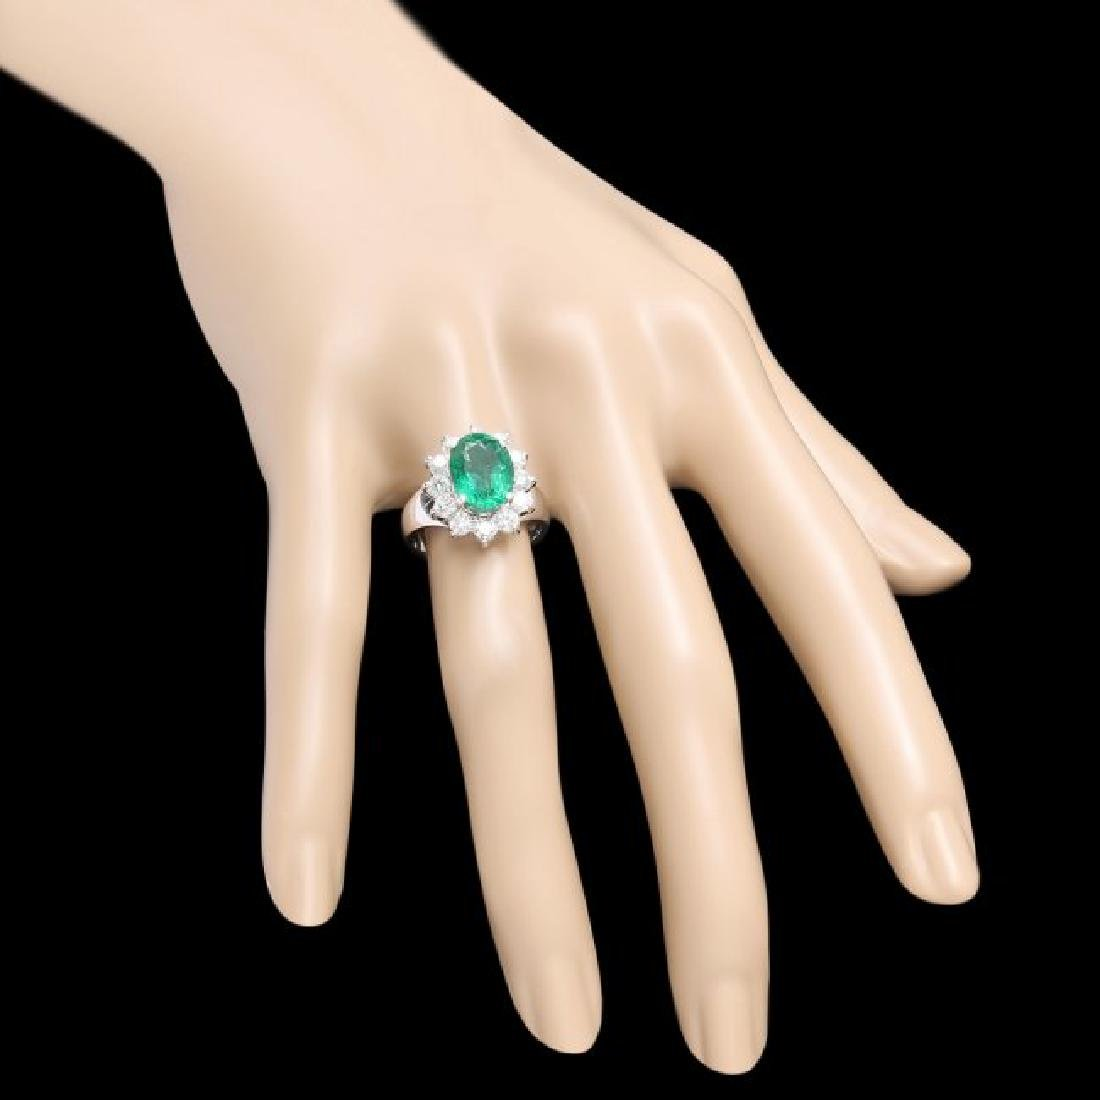 14k White Gold 3.50ct Emerald 1.10ct Diamond Ring - 3